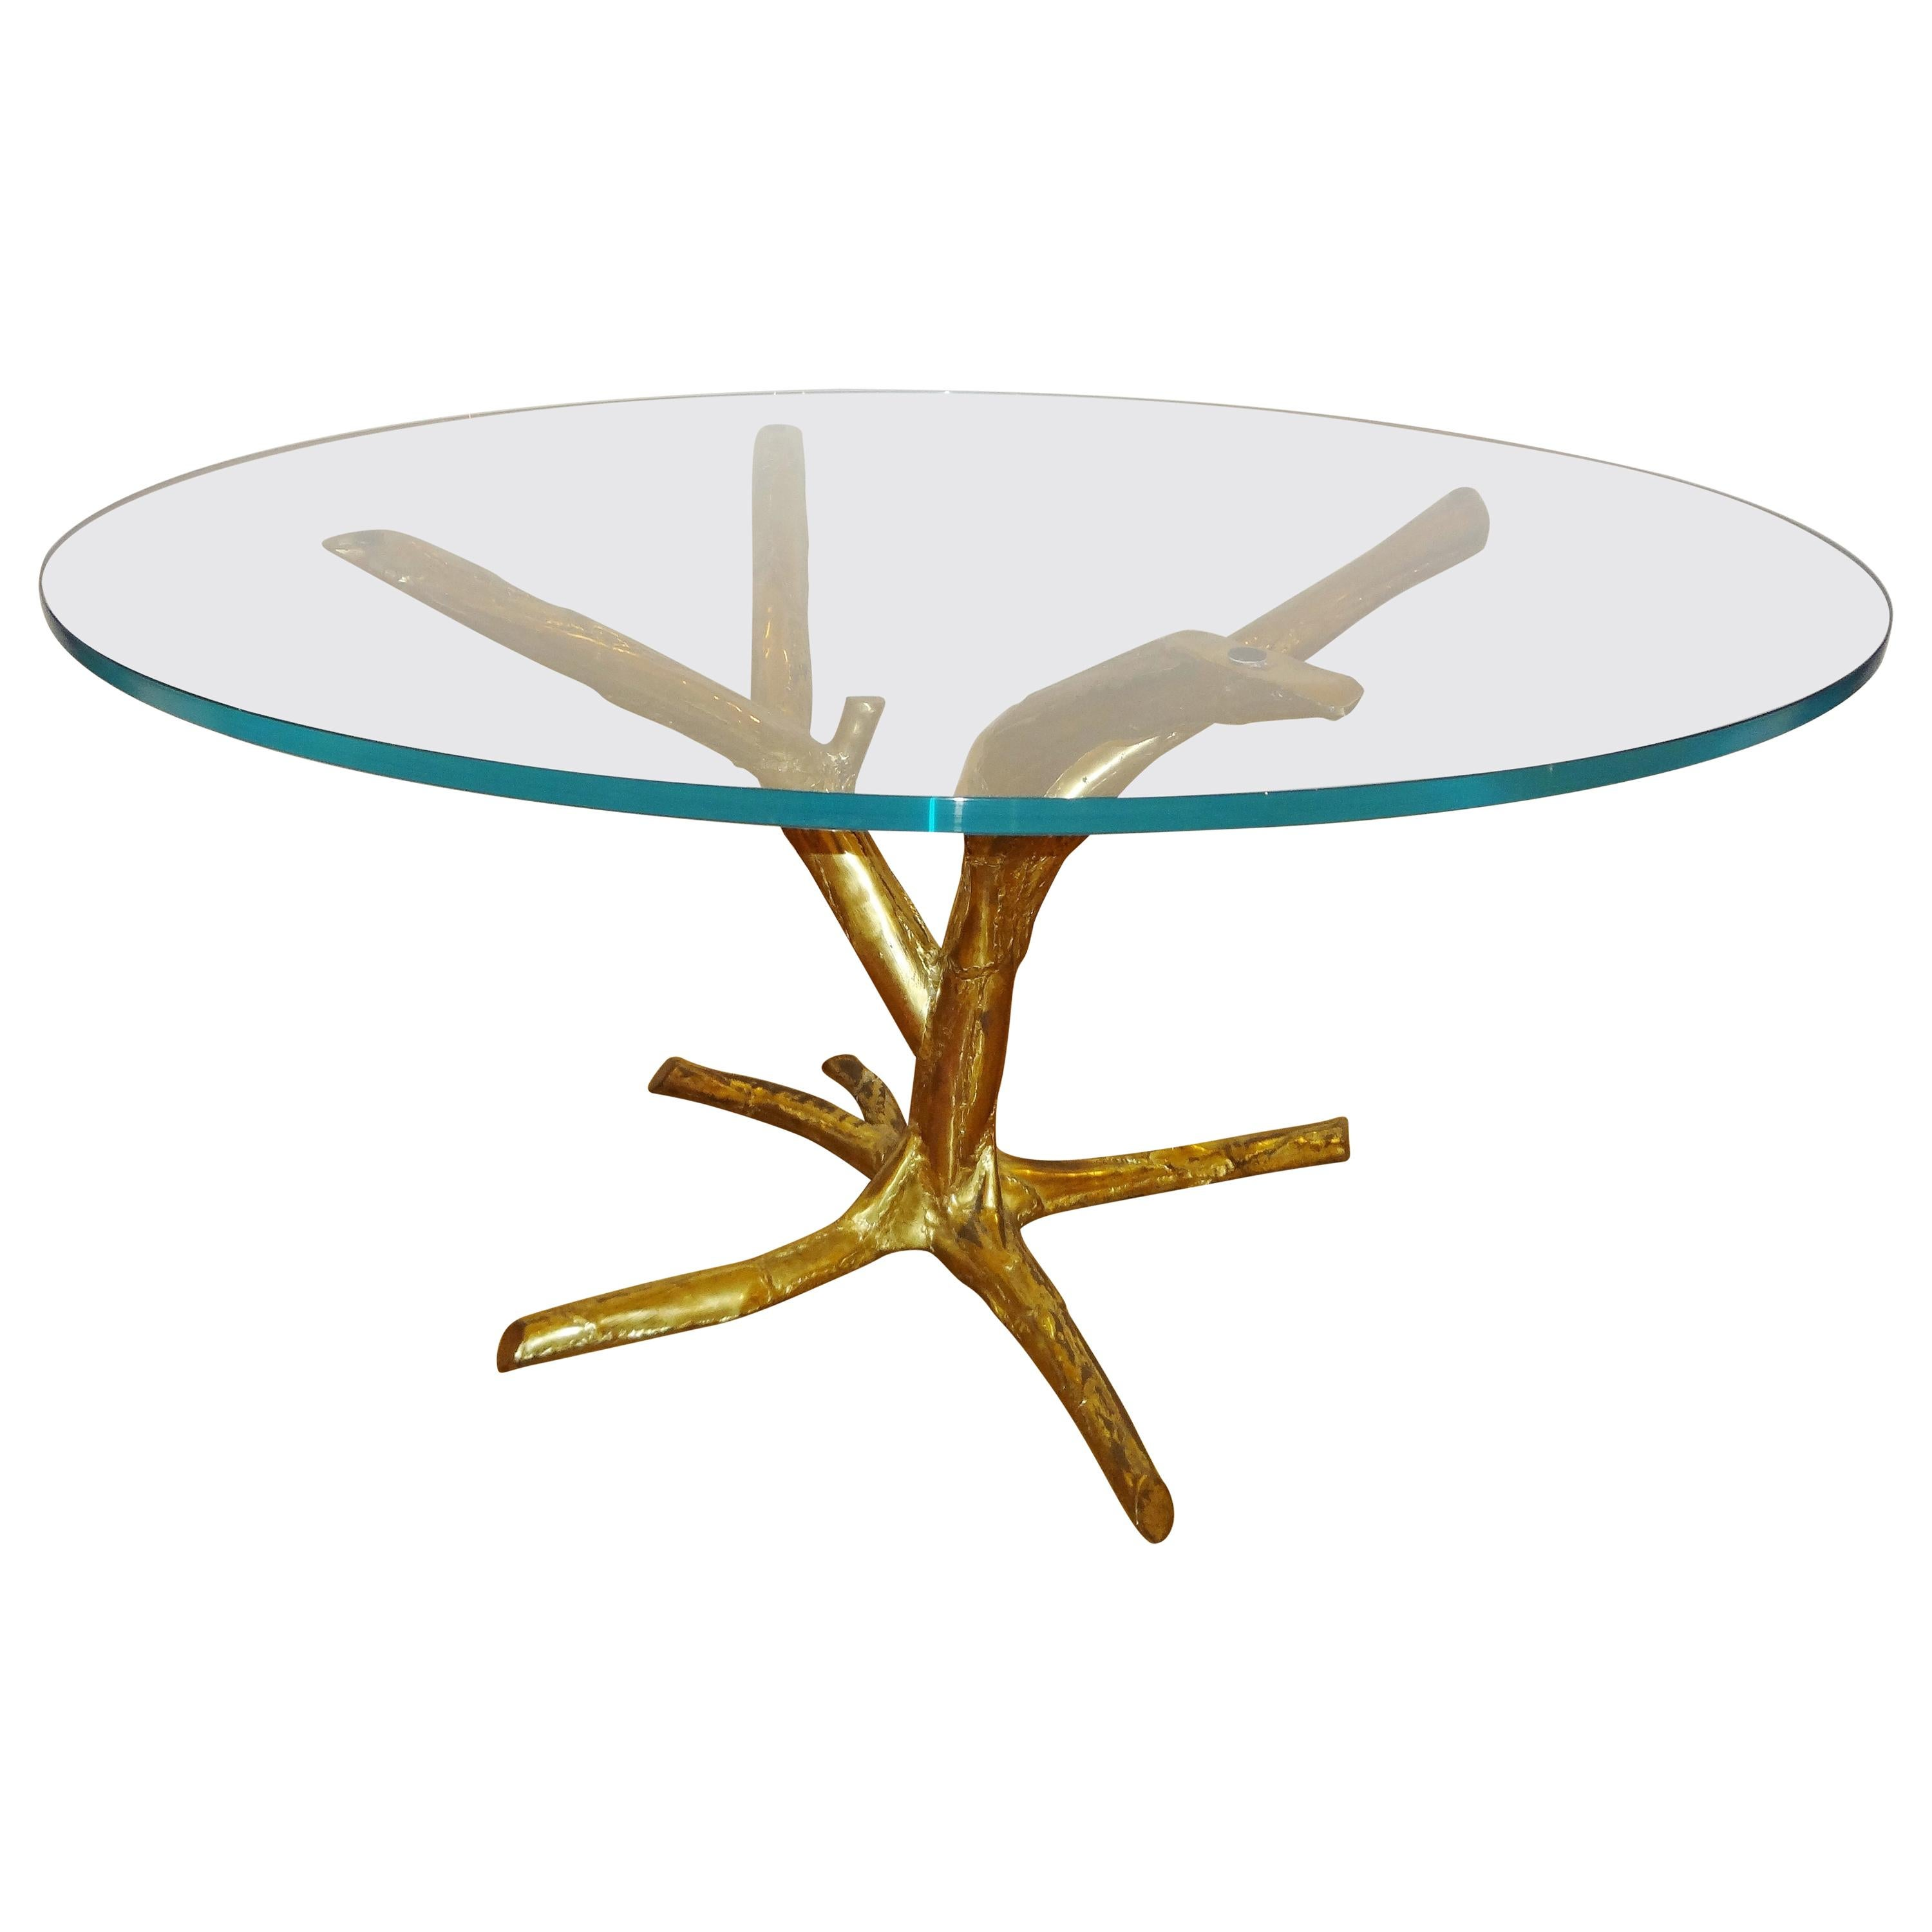 Large Circular Table by J. Duval Brasseur, 1982